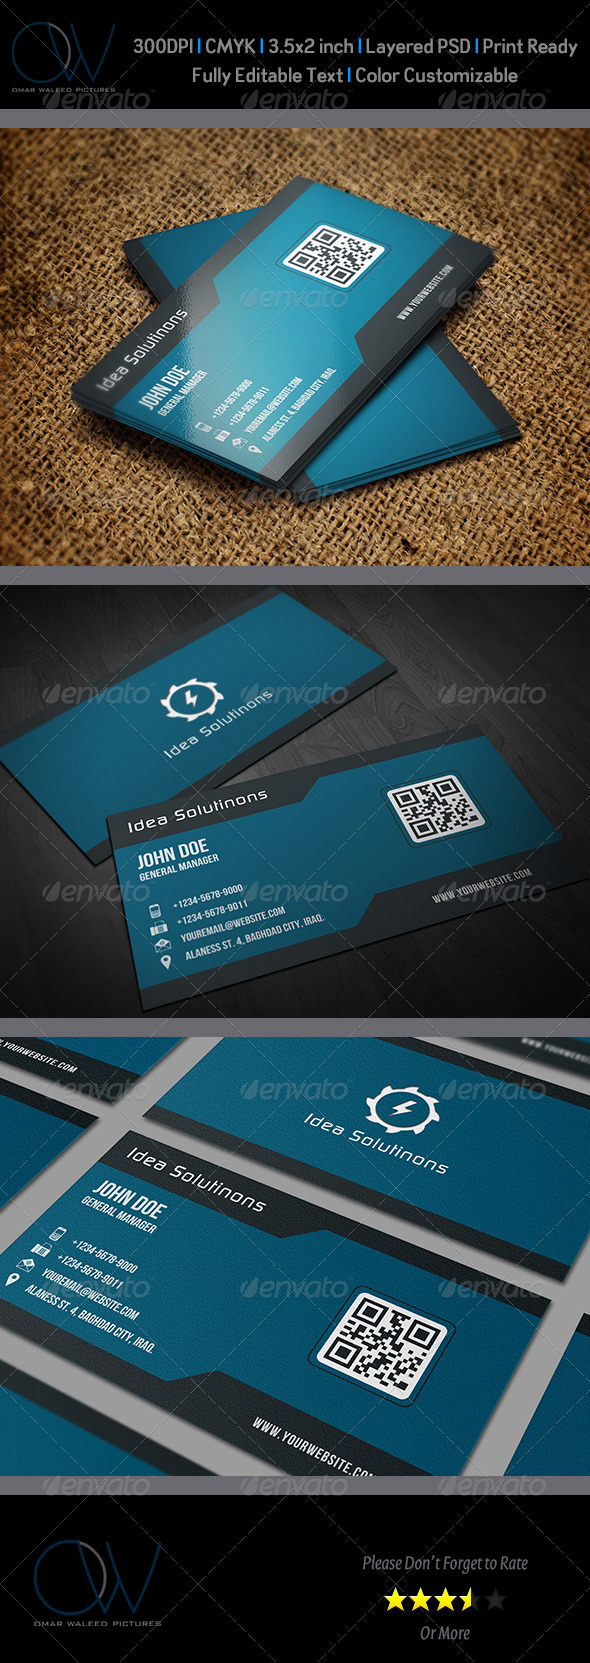 Corporate Business Card Vol.9 - Corporate Business Cards